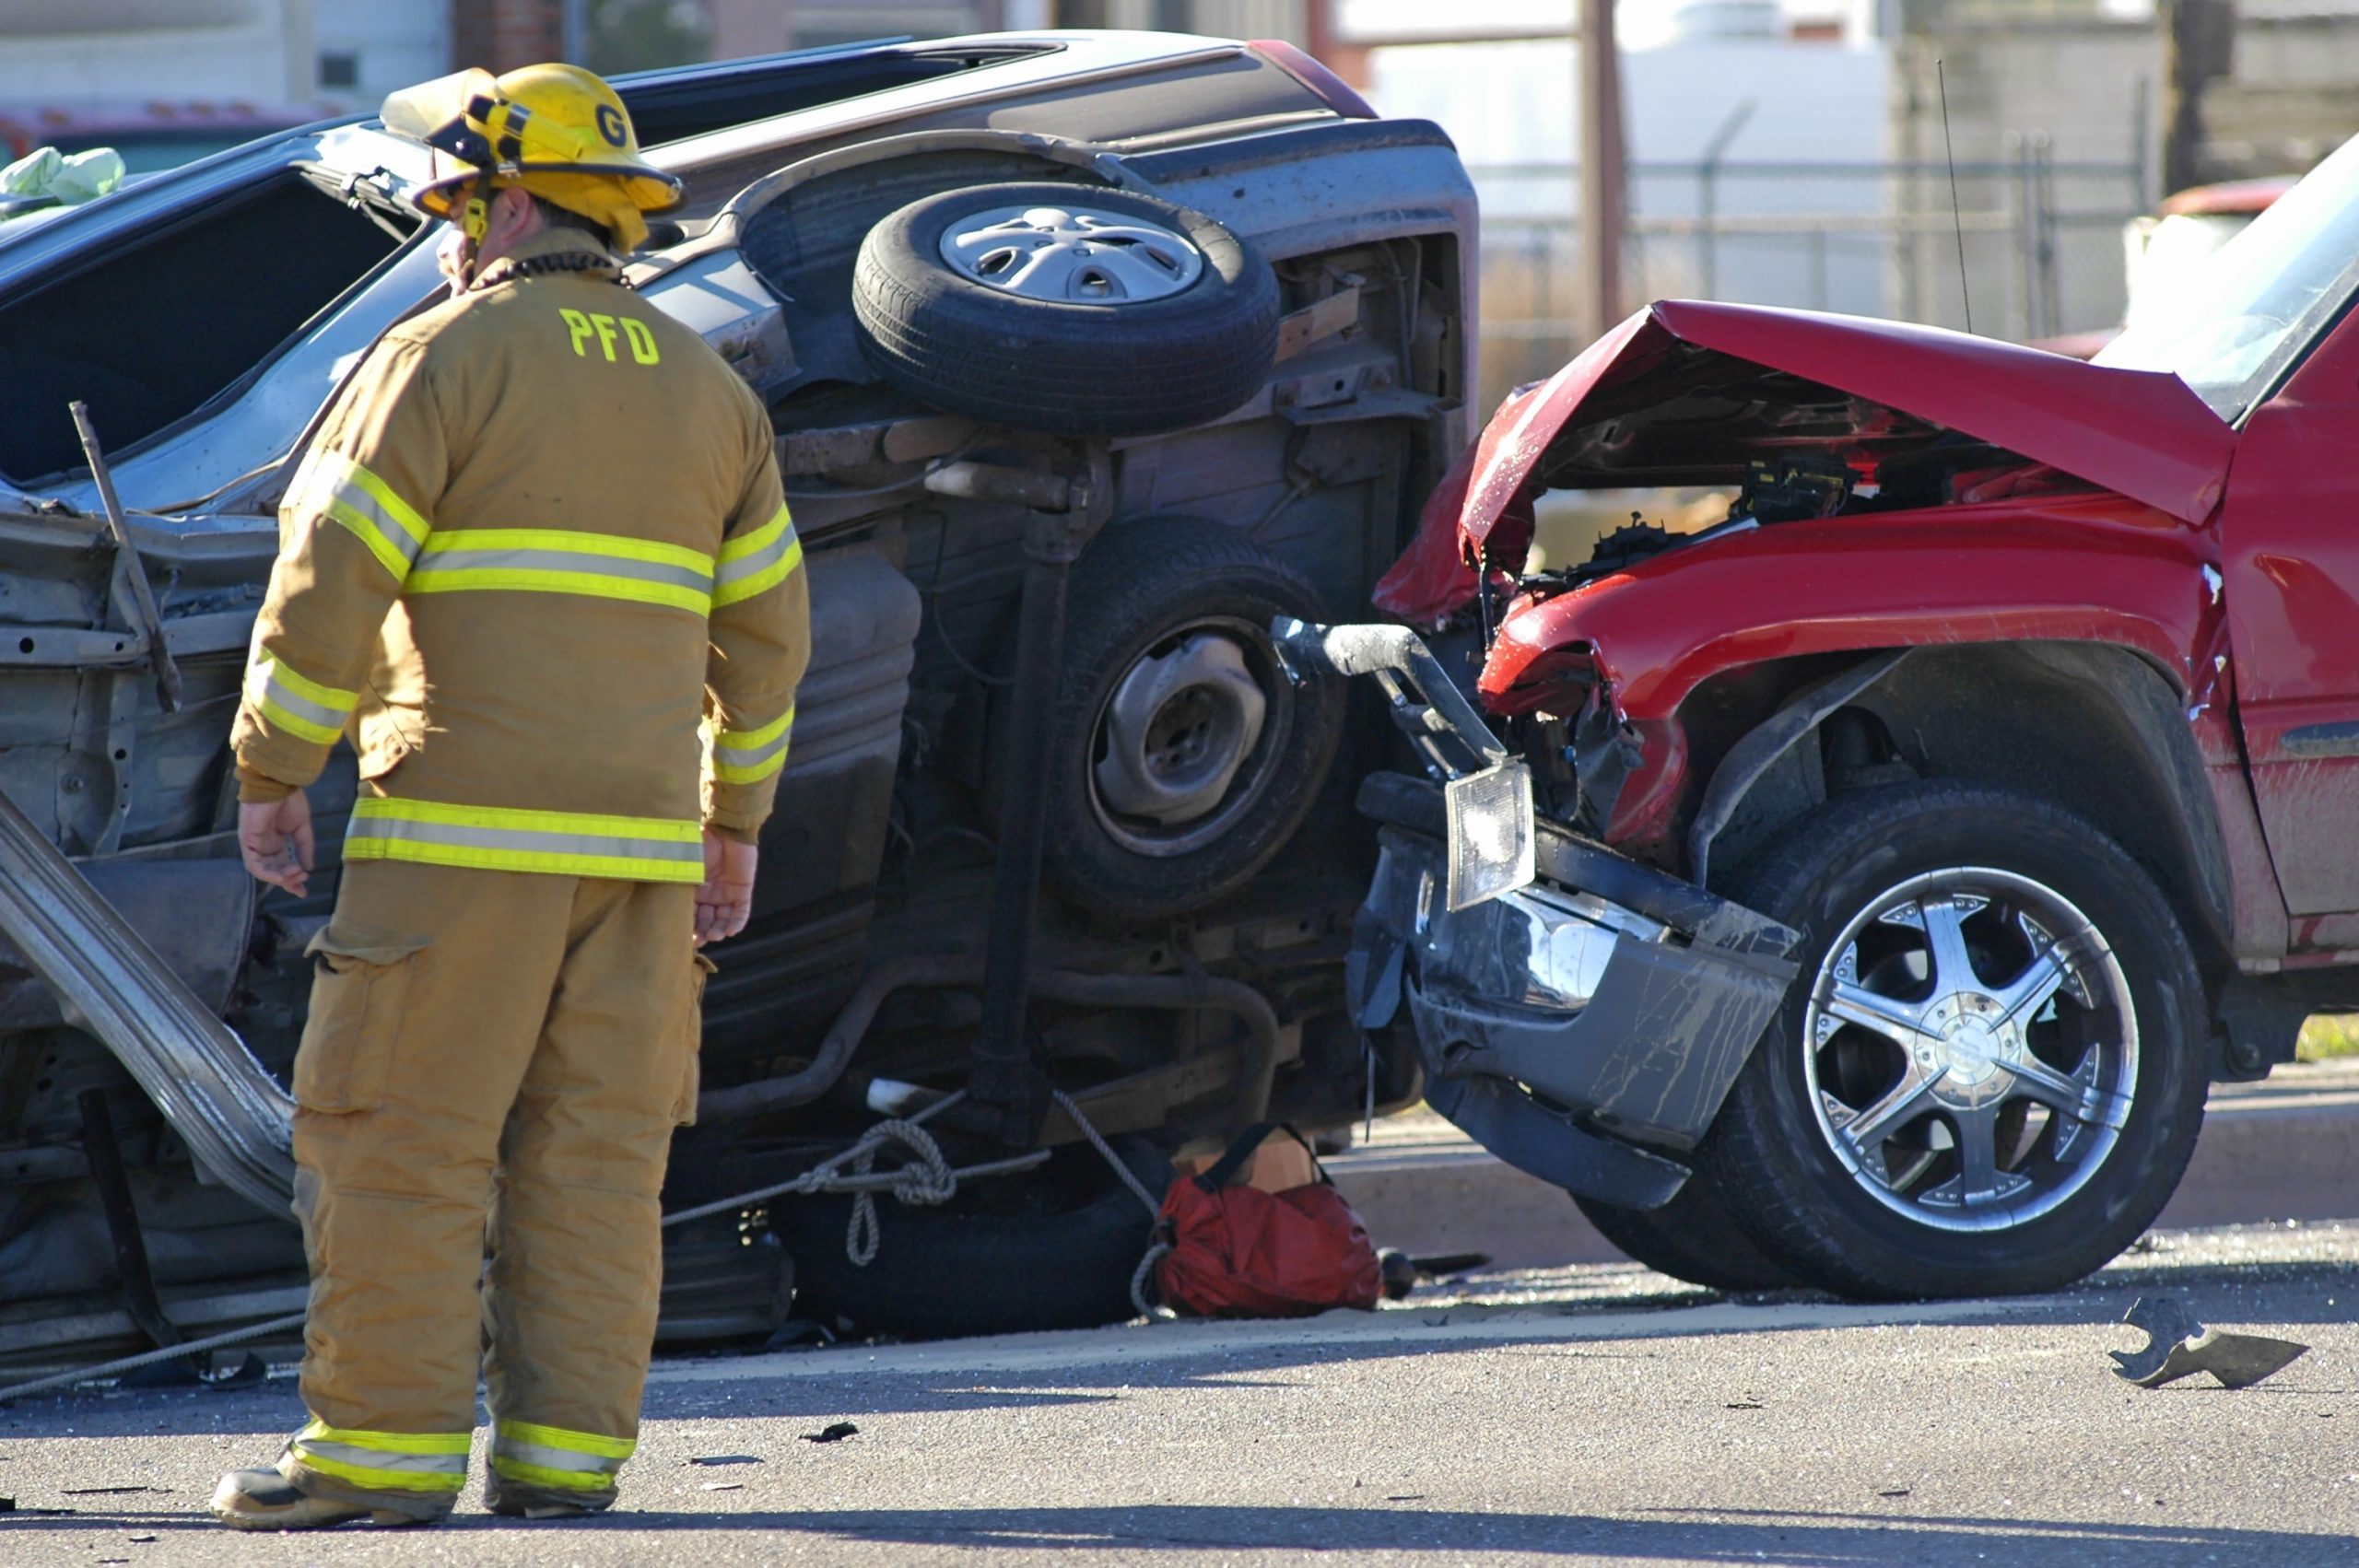 Picture of a two-car accident with a firefighter on the scene